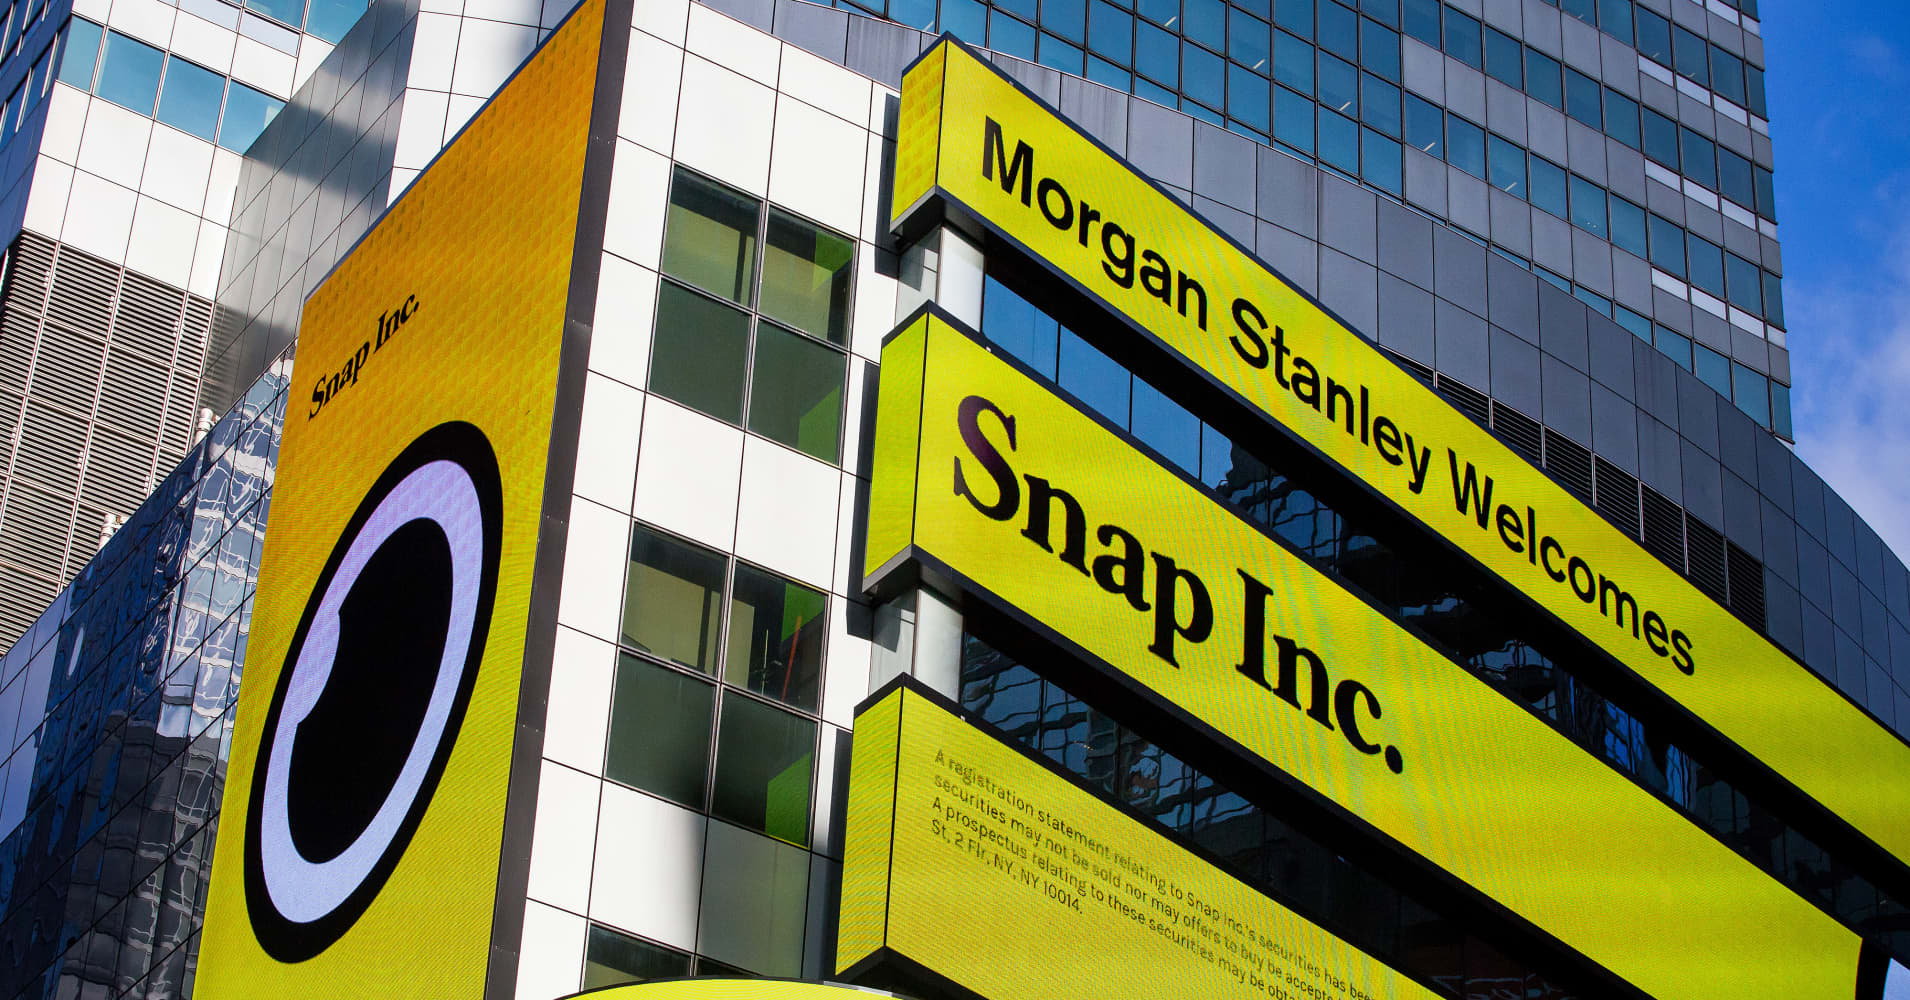 Snapchat parent snap sees ipo priced between 14 and 16 per share buycottarizona Image collections